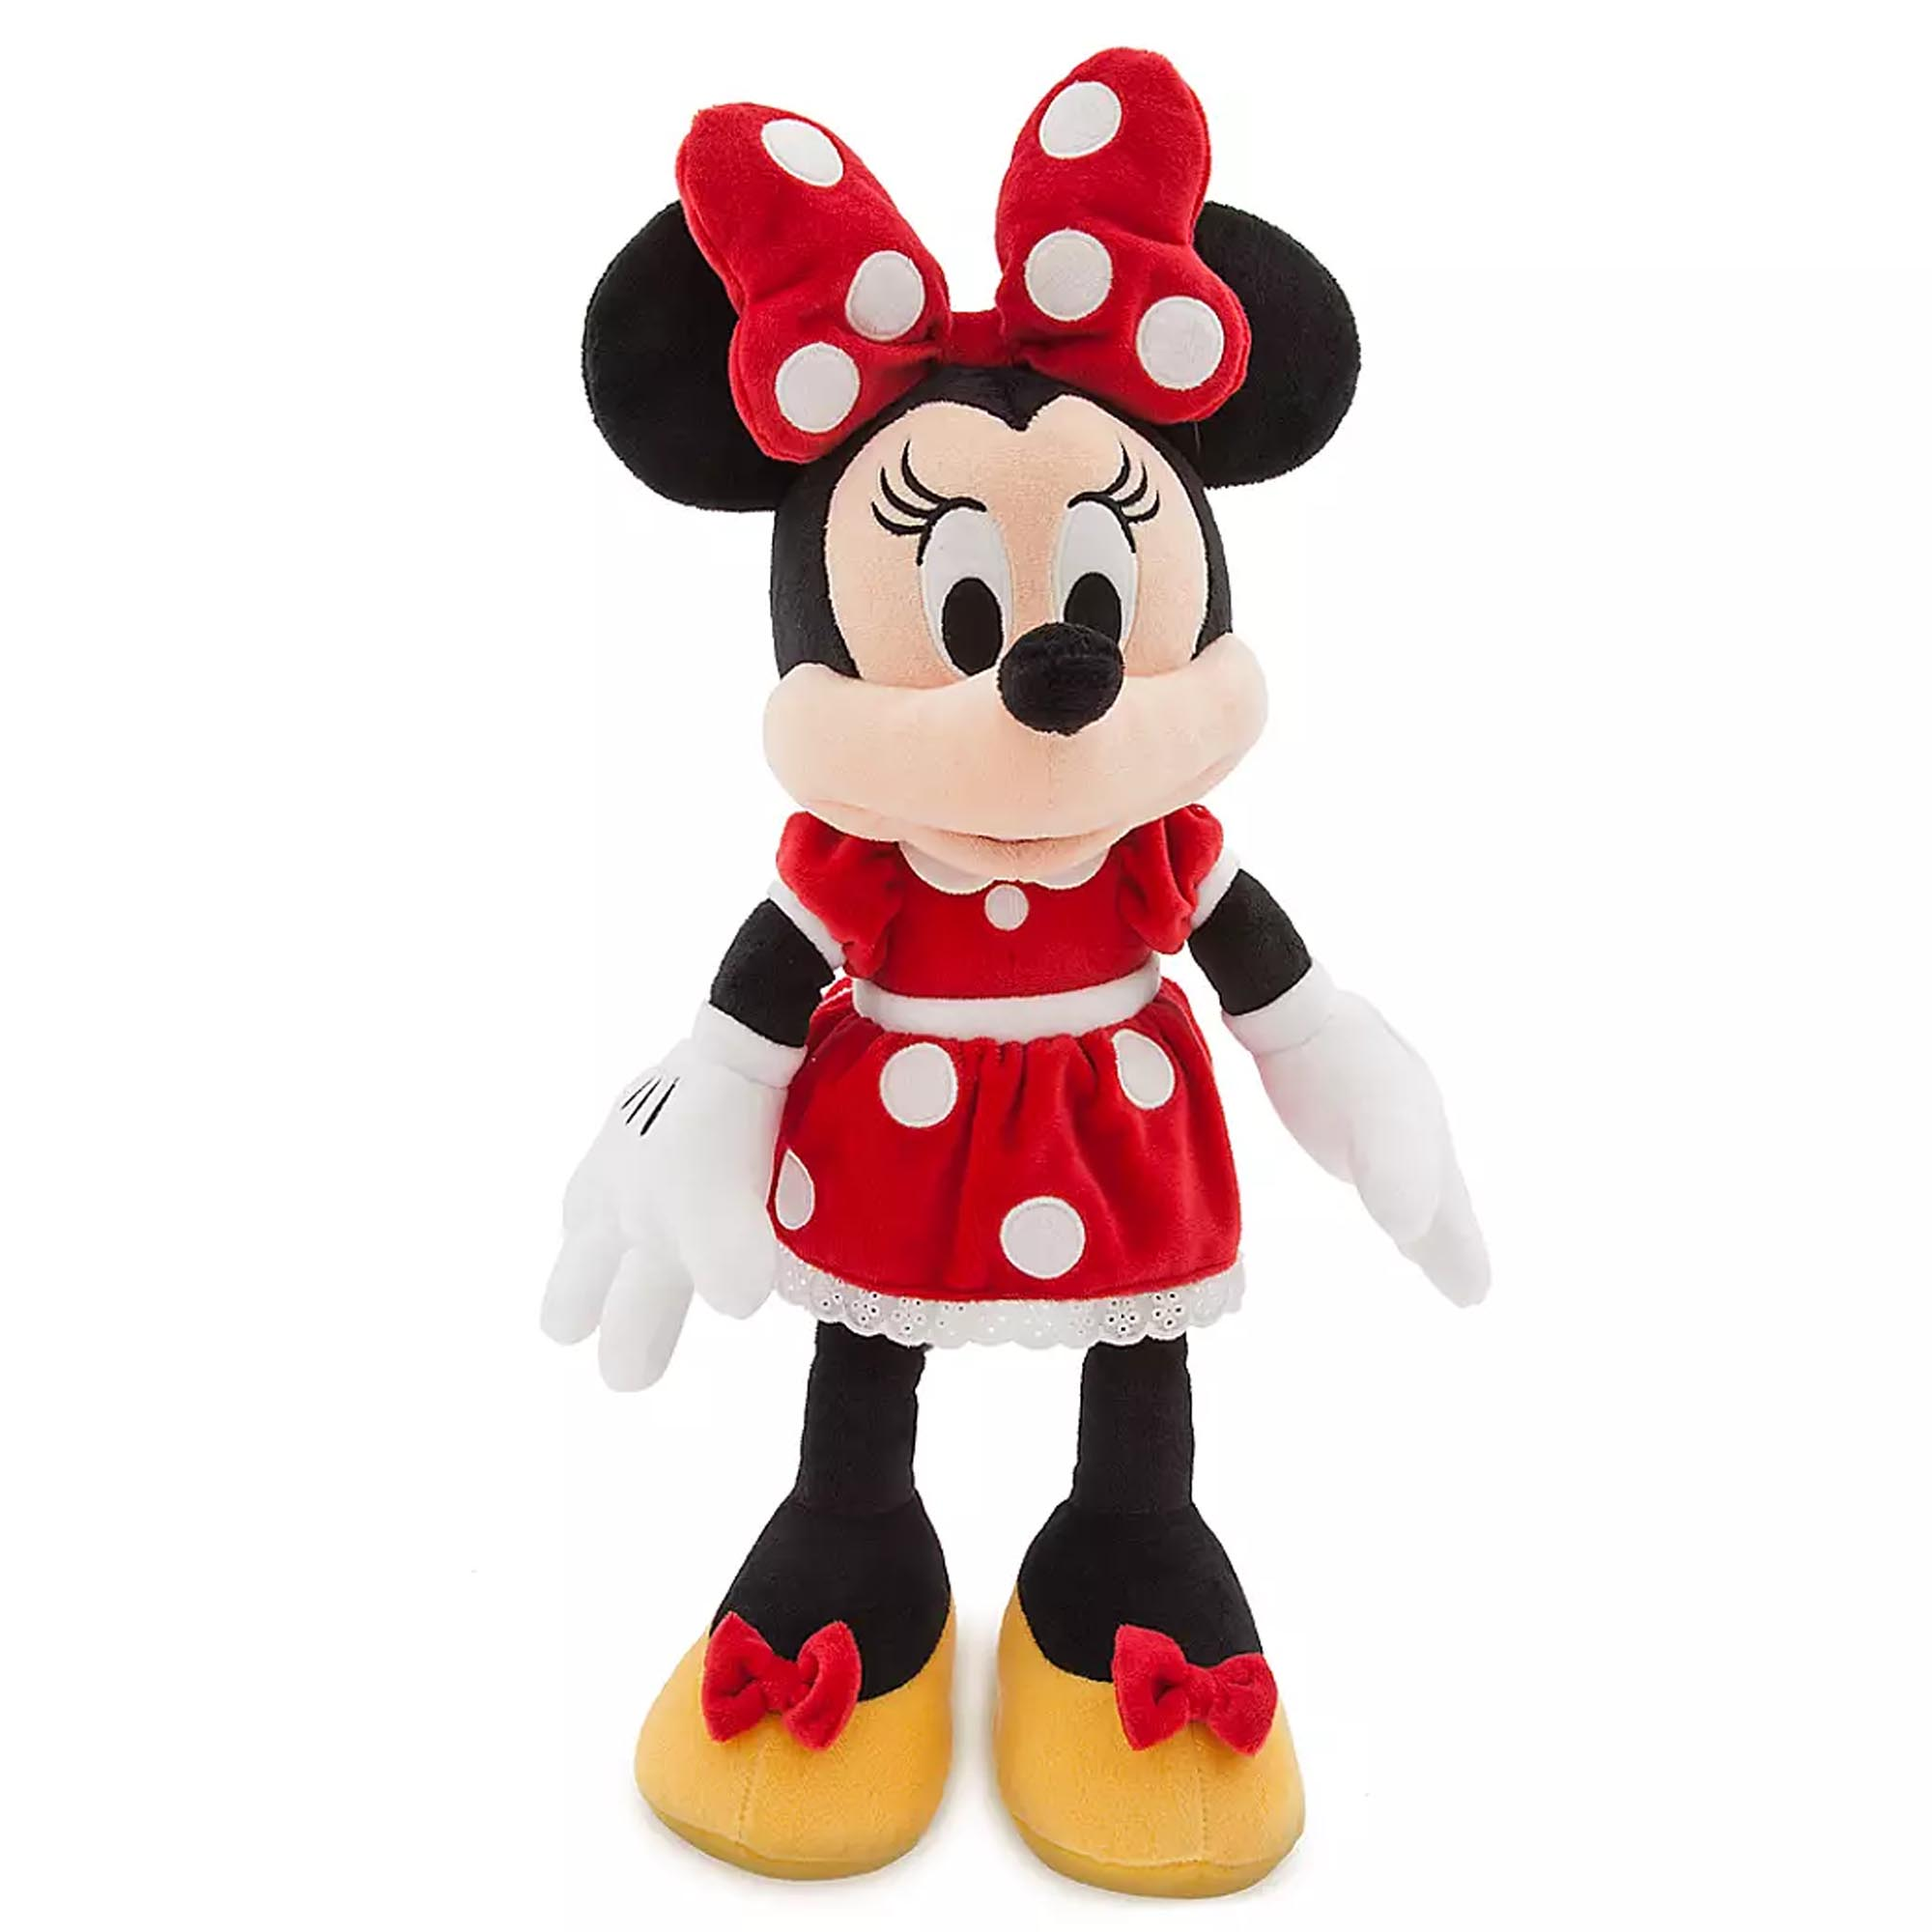 Minnie Mouse Large Classic Plush Red Dress Authentic Disney